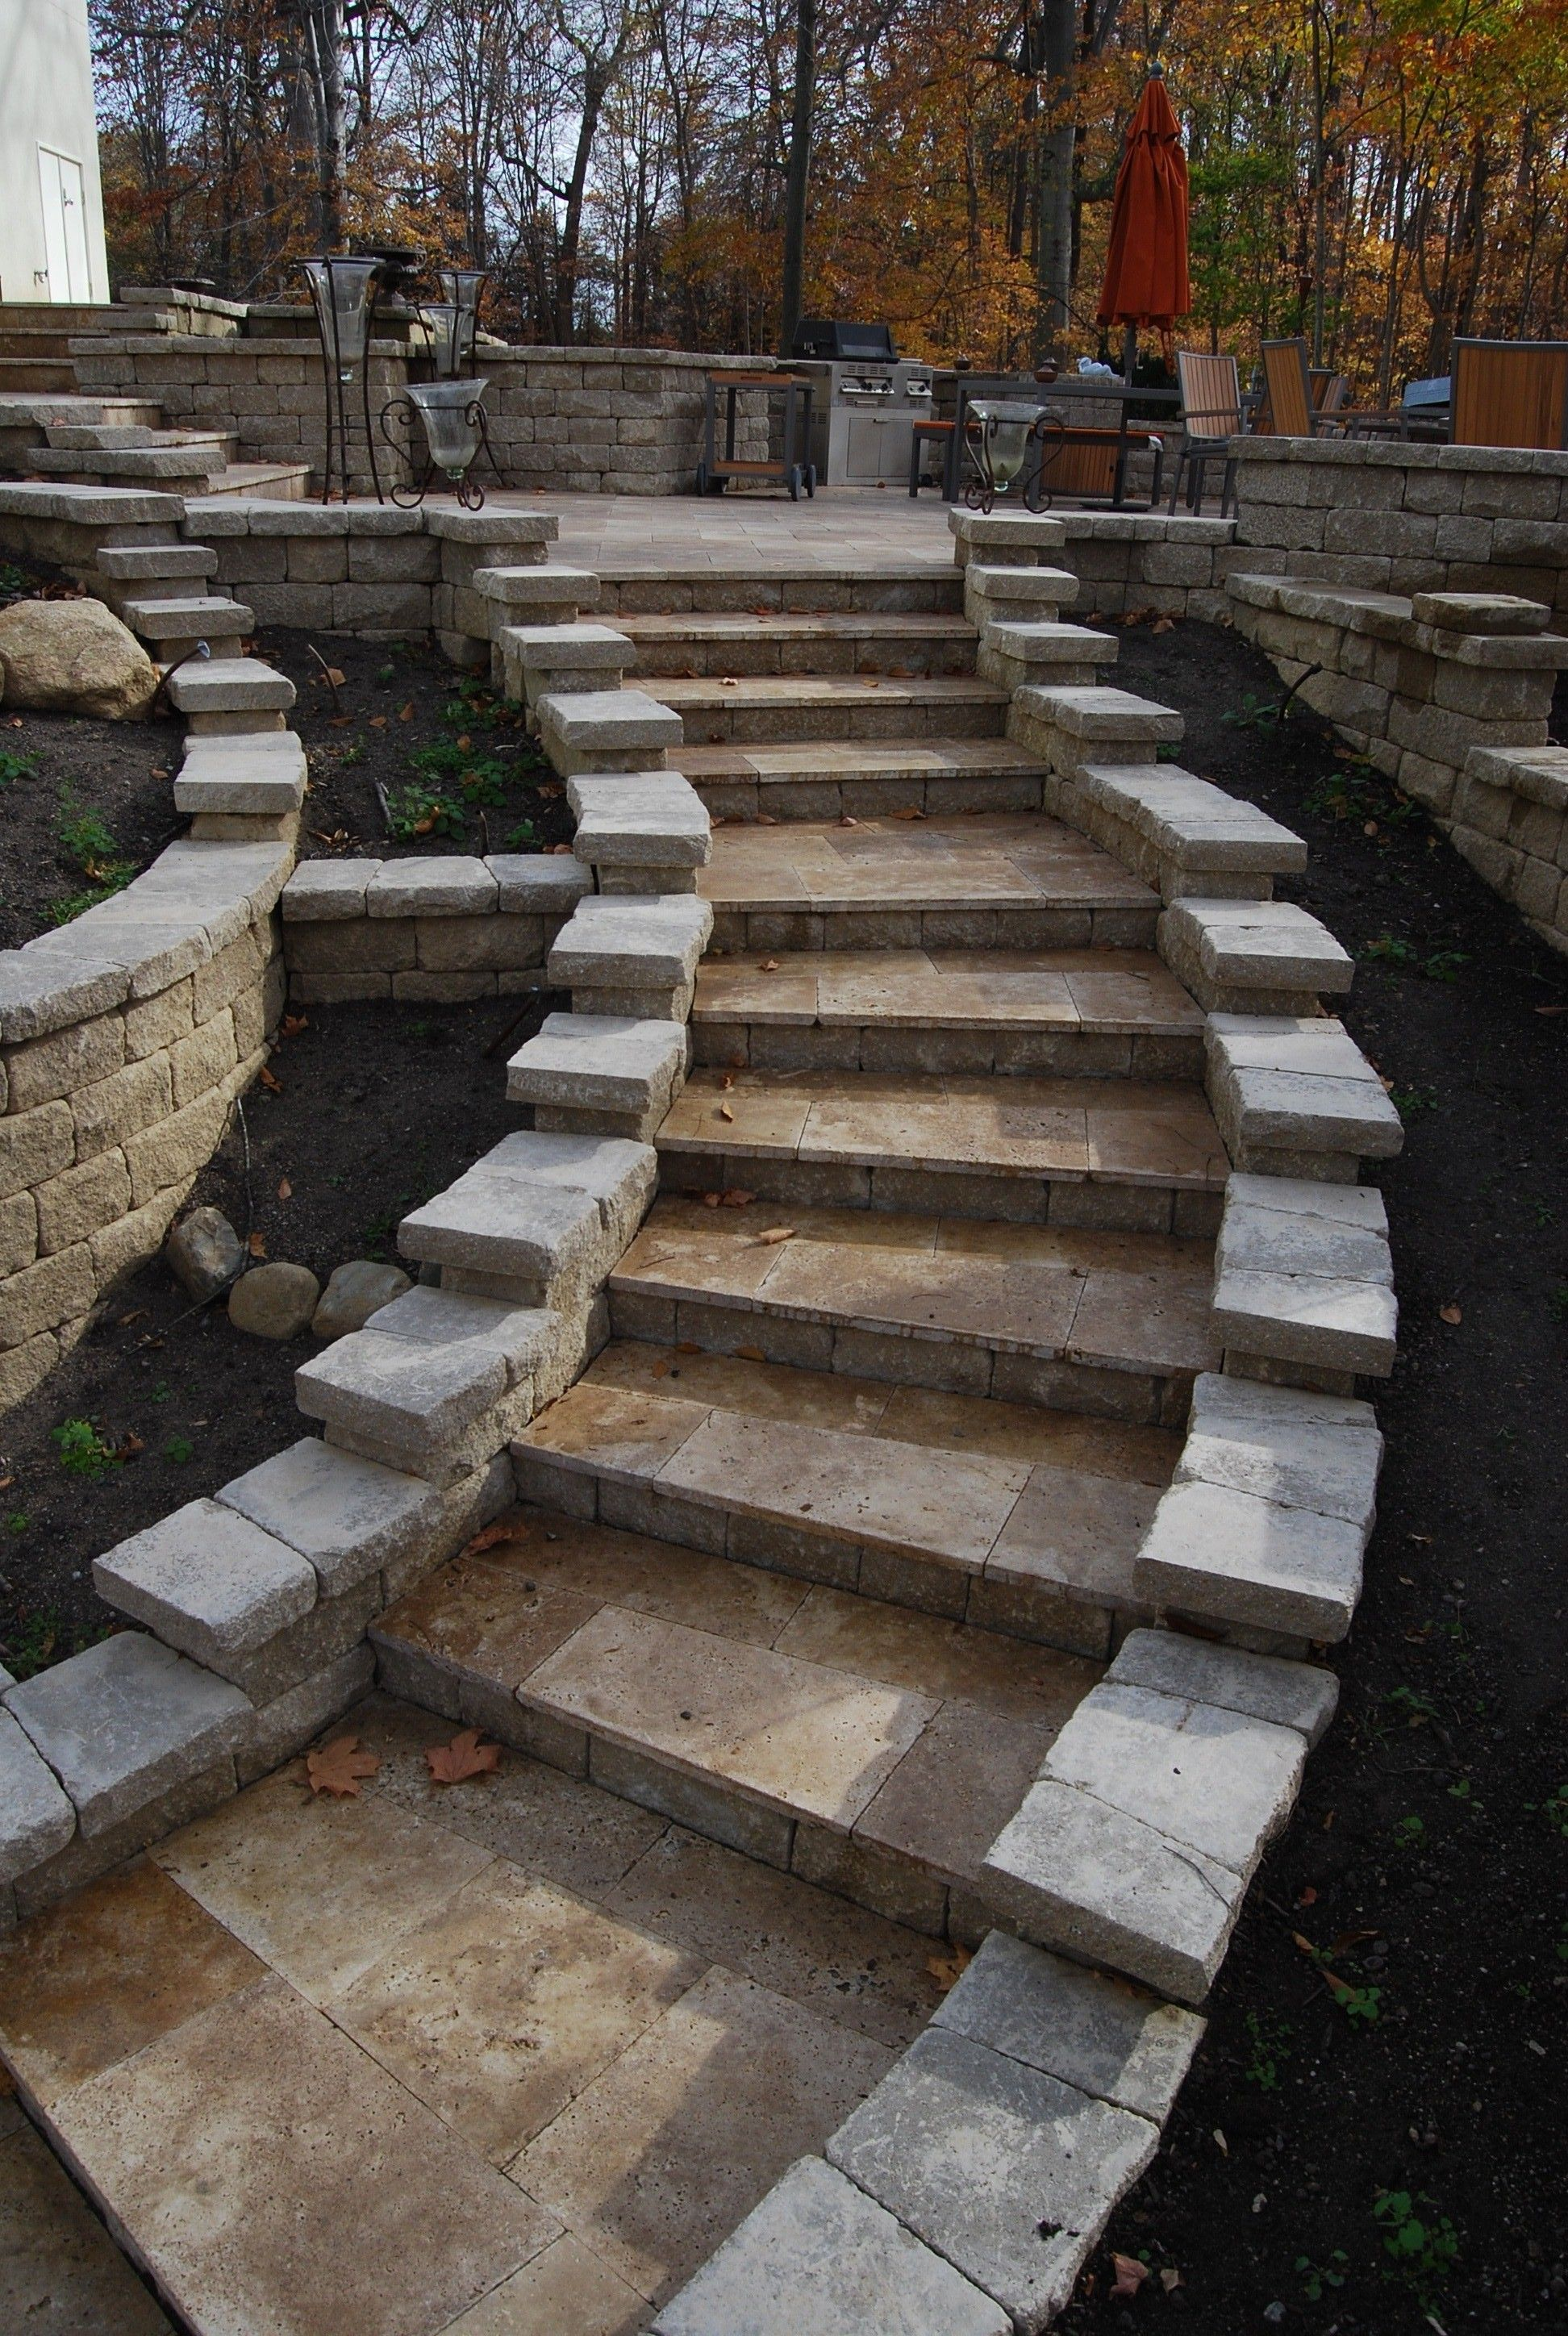 Inexpensive Hardscape Ideas Travertine Steps, Hardscape, Pavers, Design, Fall Patios